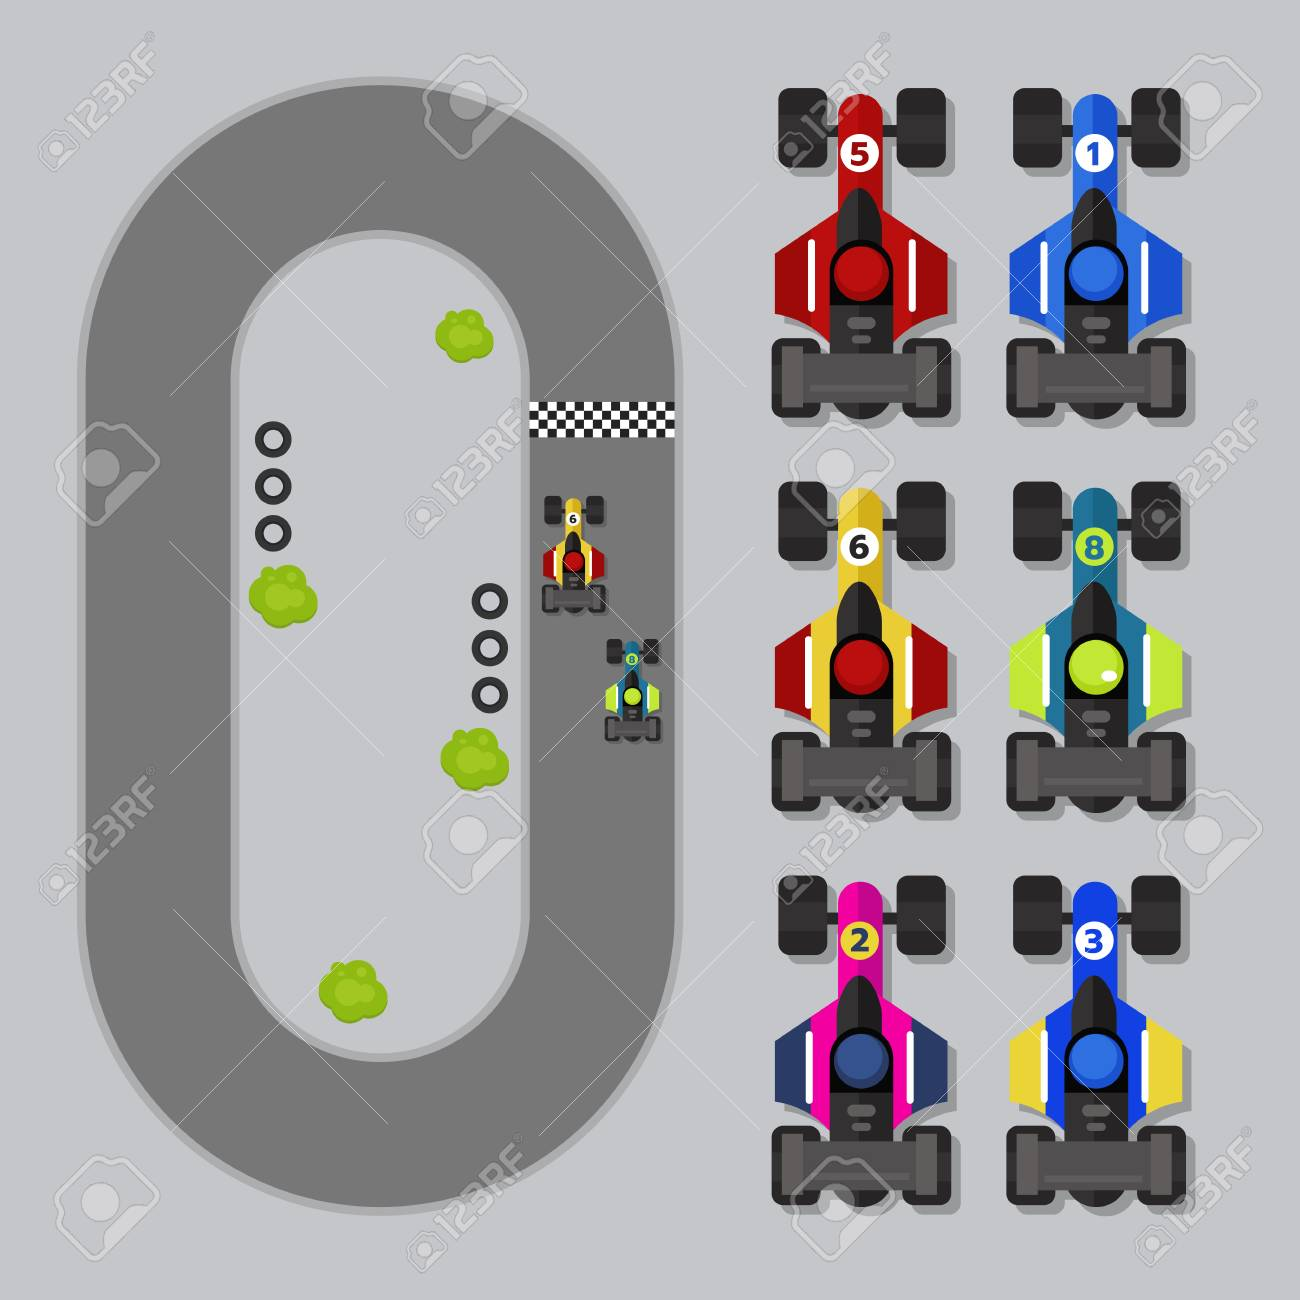 Top view 2D Game asset formula one, isolated and road, for traffic